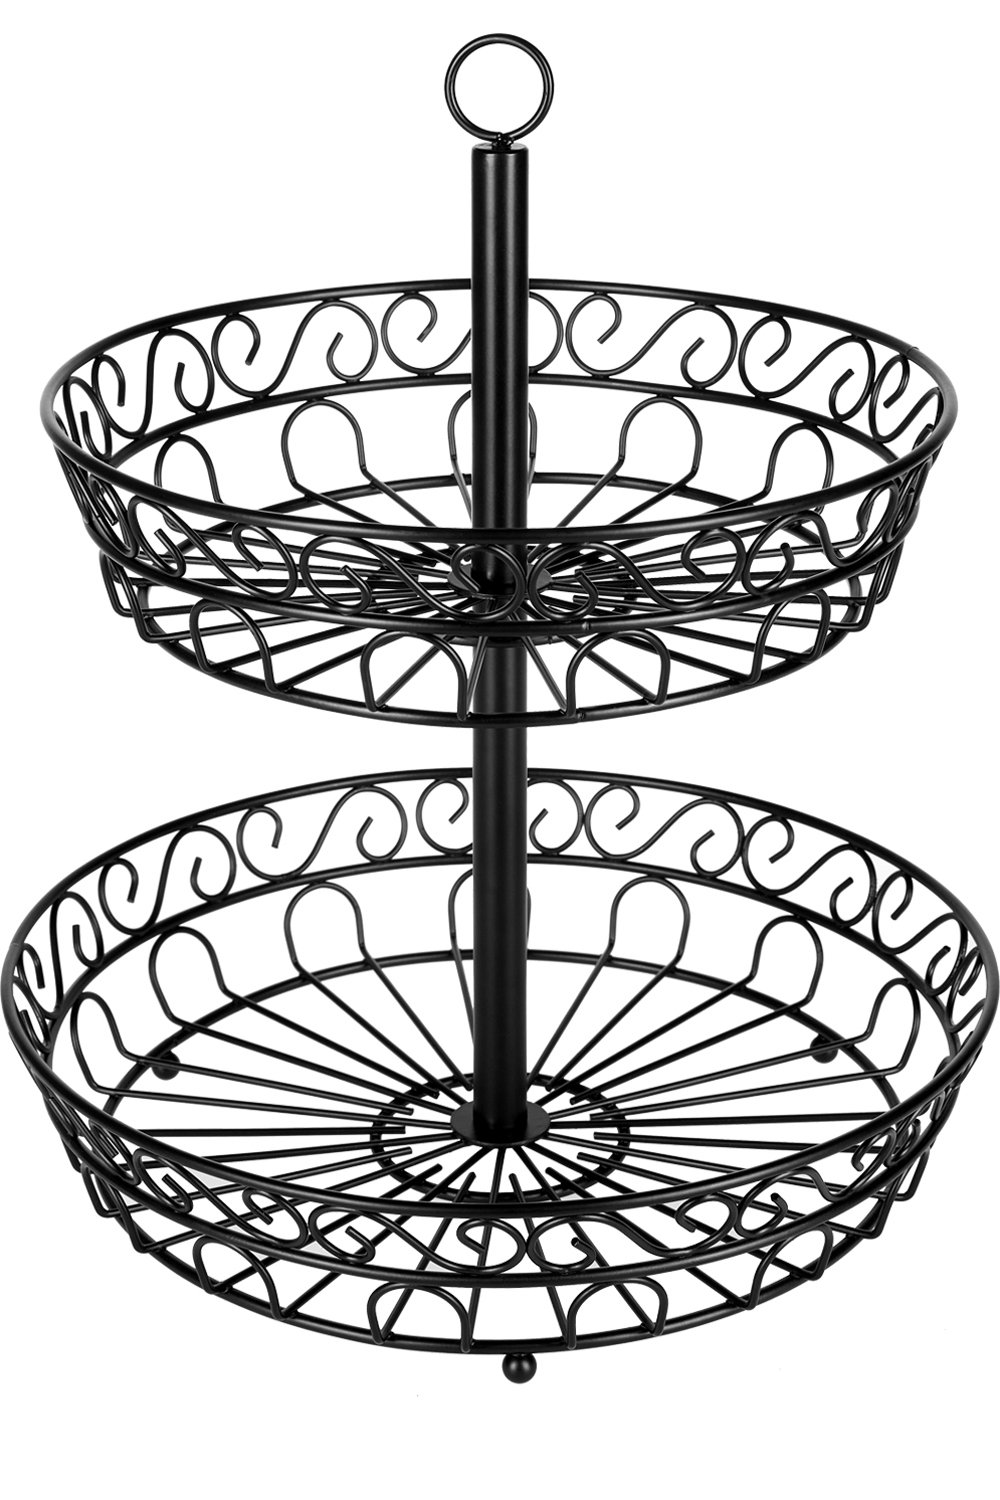 Chefarone fruit bowl - 30 cm 2-tier fruit basket for more space on the worktop - decorative eye-catcher on your kitchen counter - metal fruit bowls black